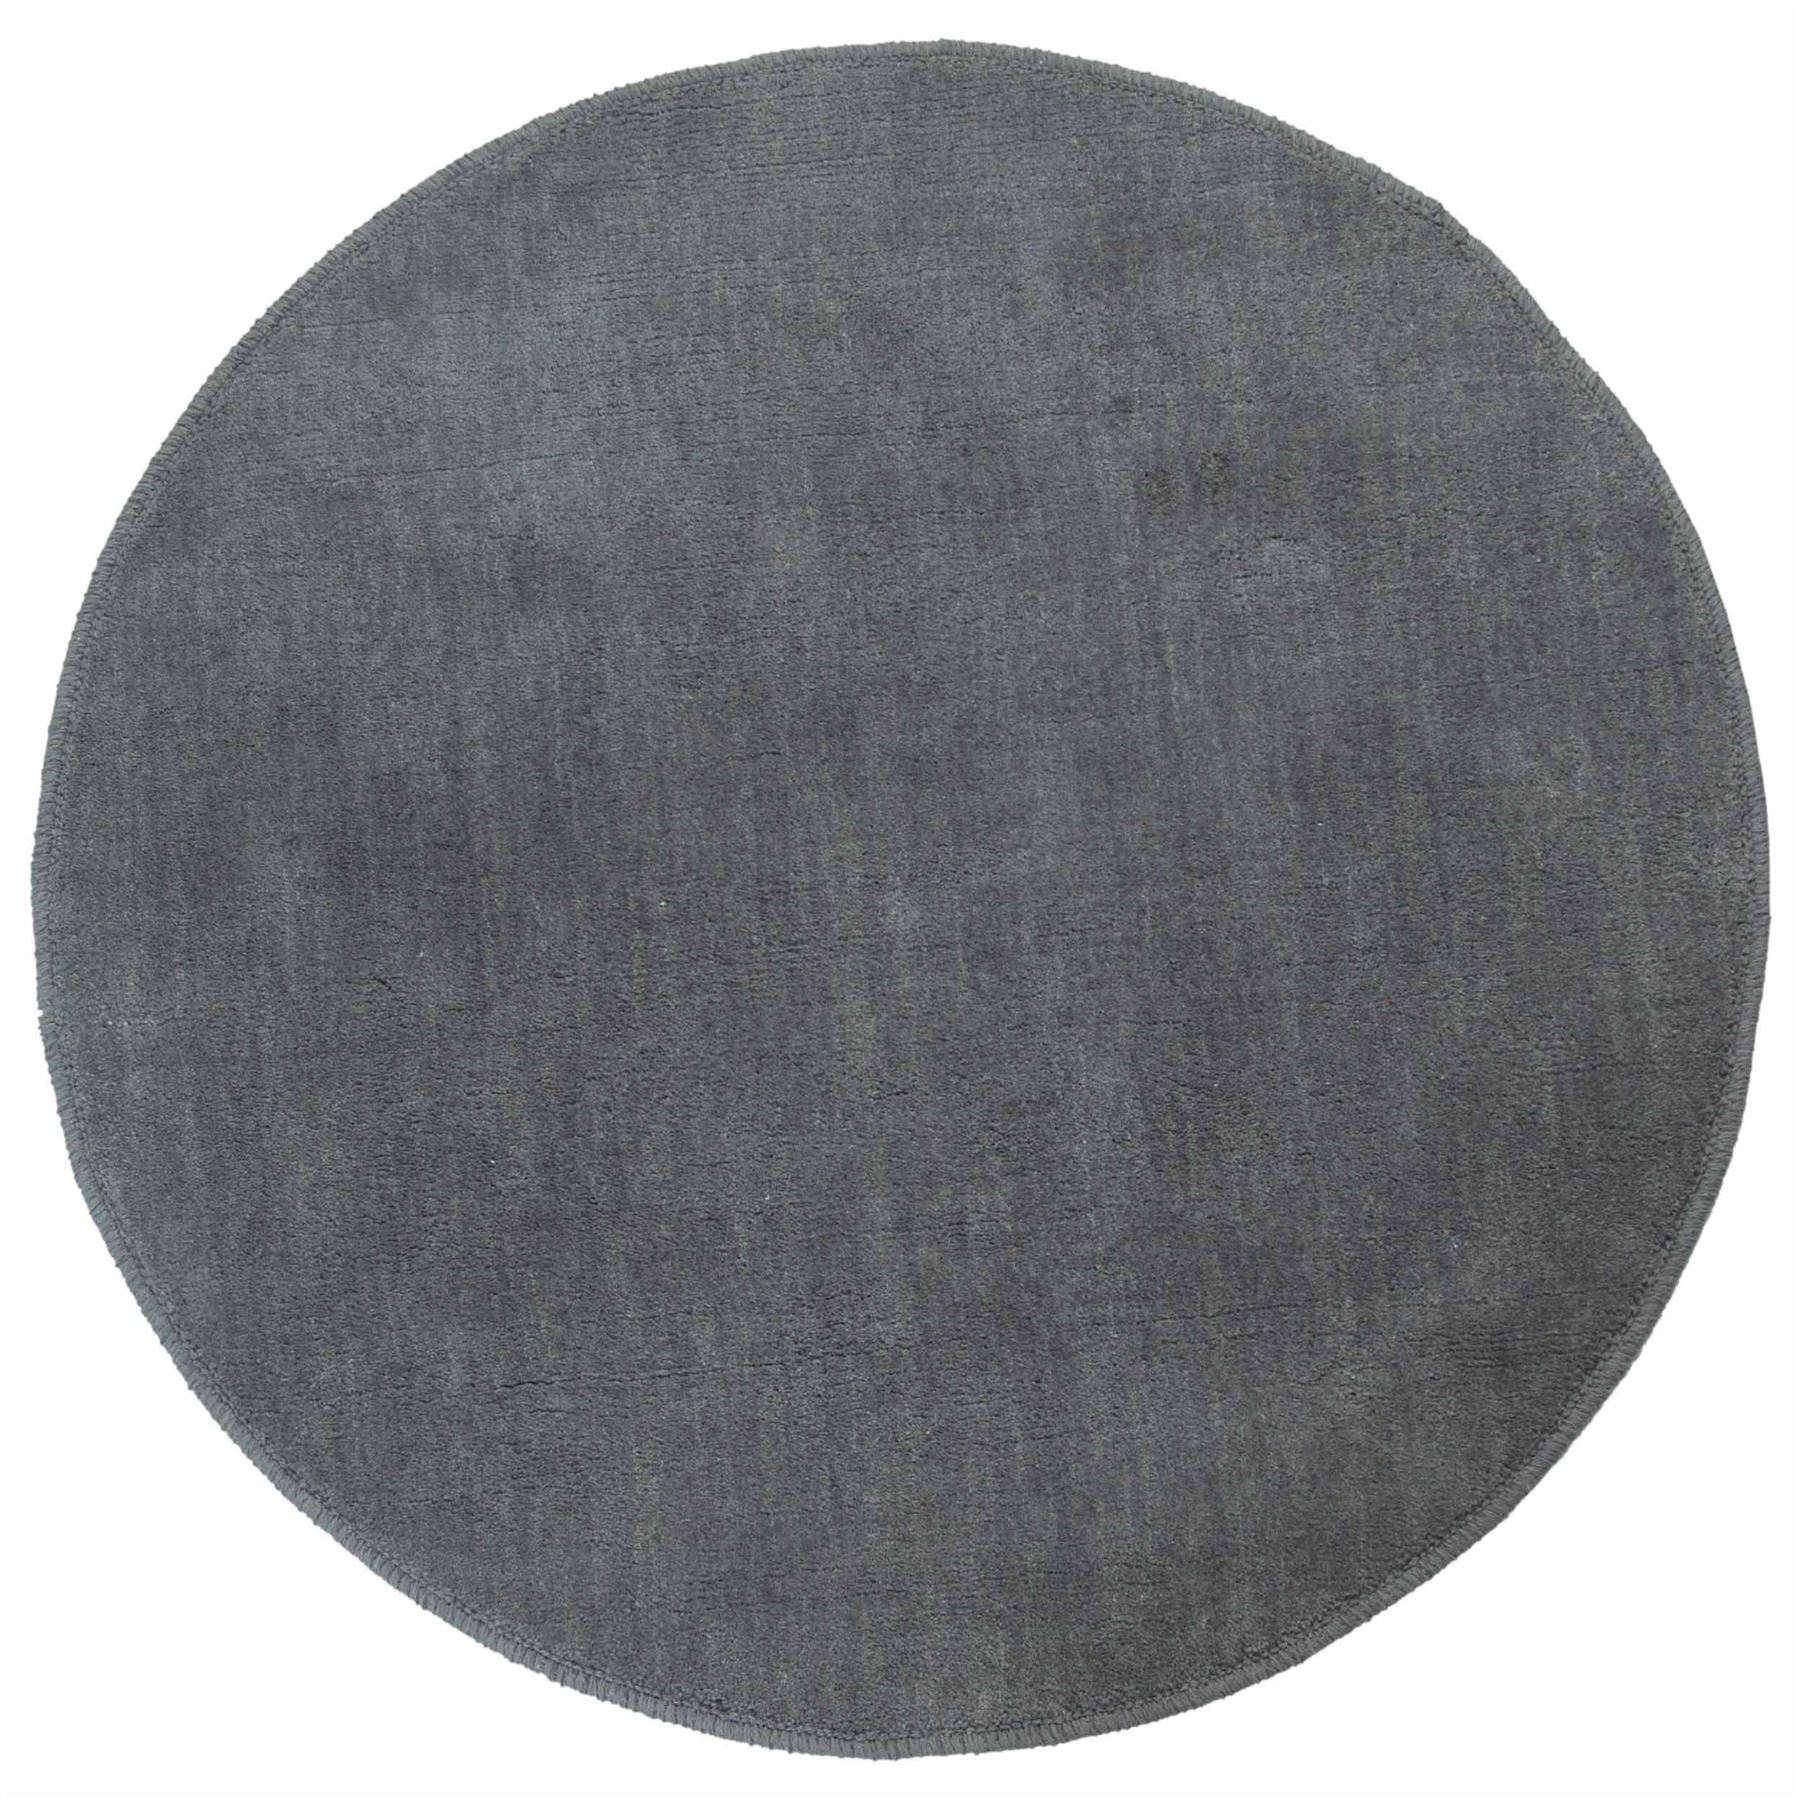 Cotton Tufted Plain Large Amp Circular Rugs Cream Red